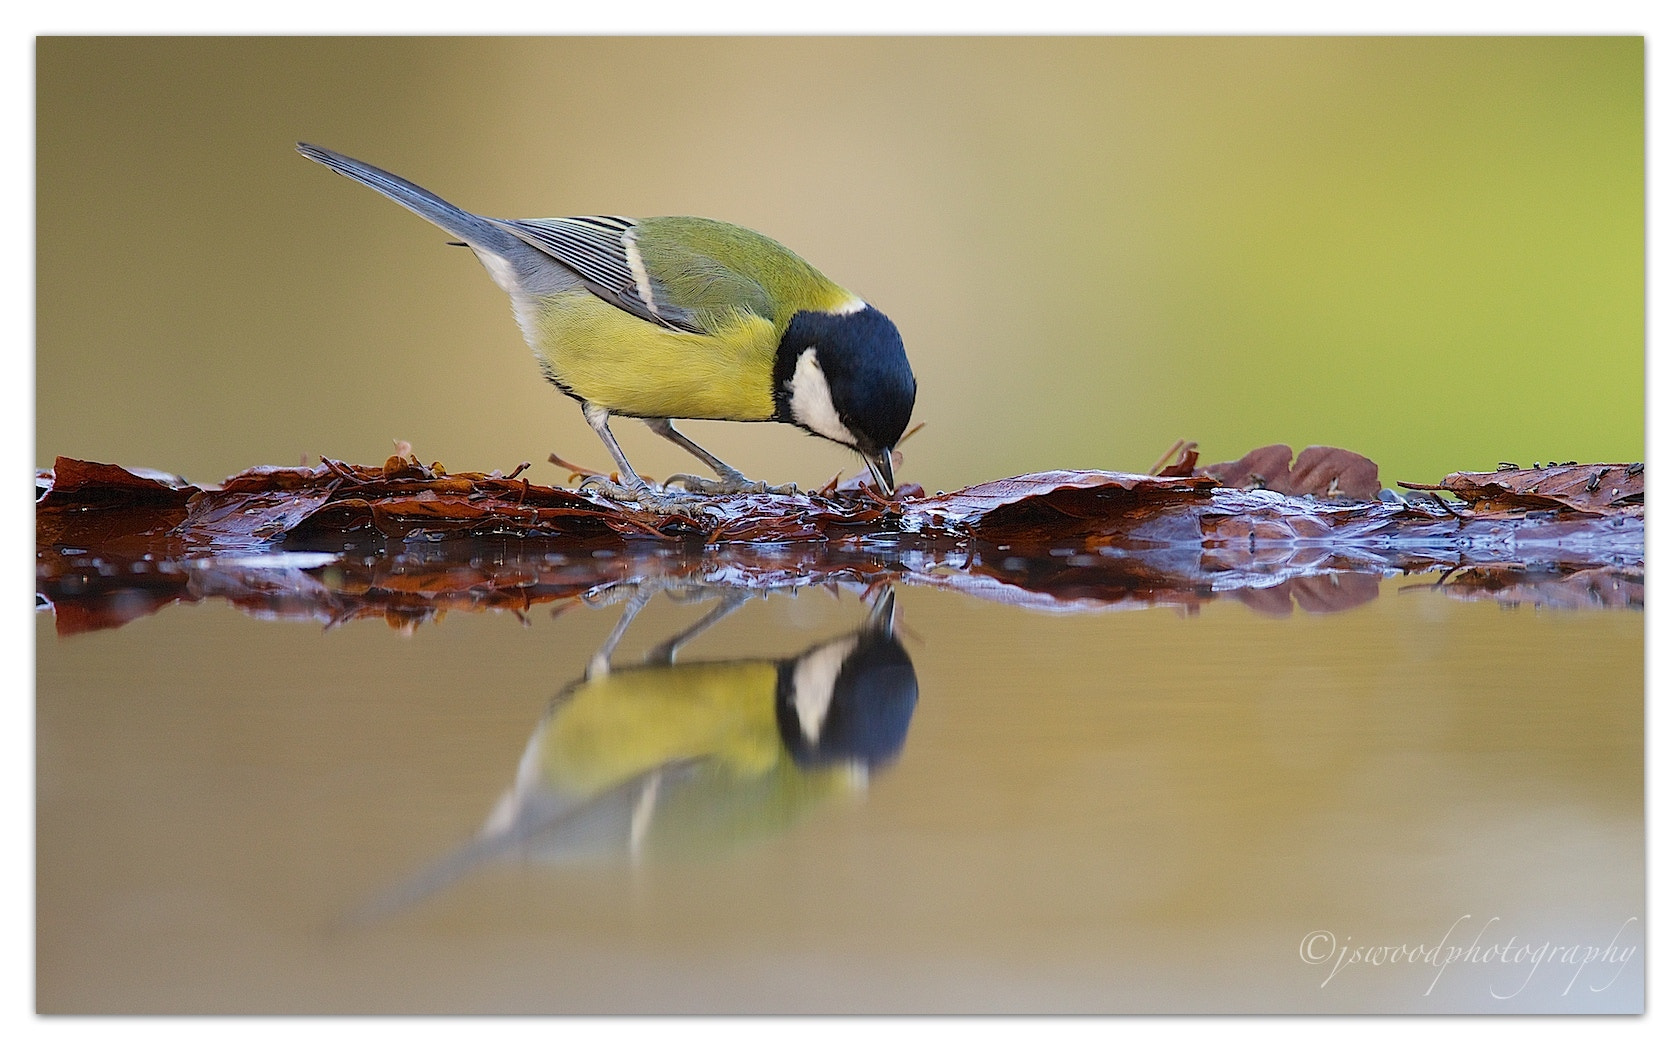 Photograph Great Tit by Jason Wood on 500px